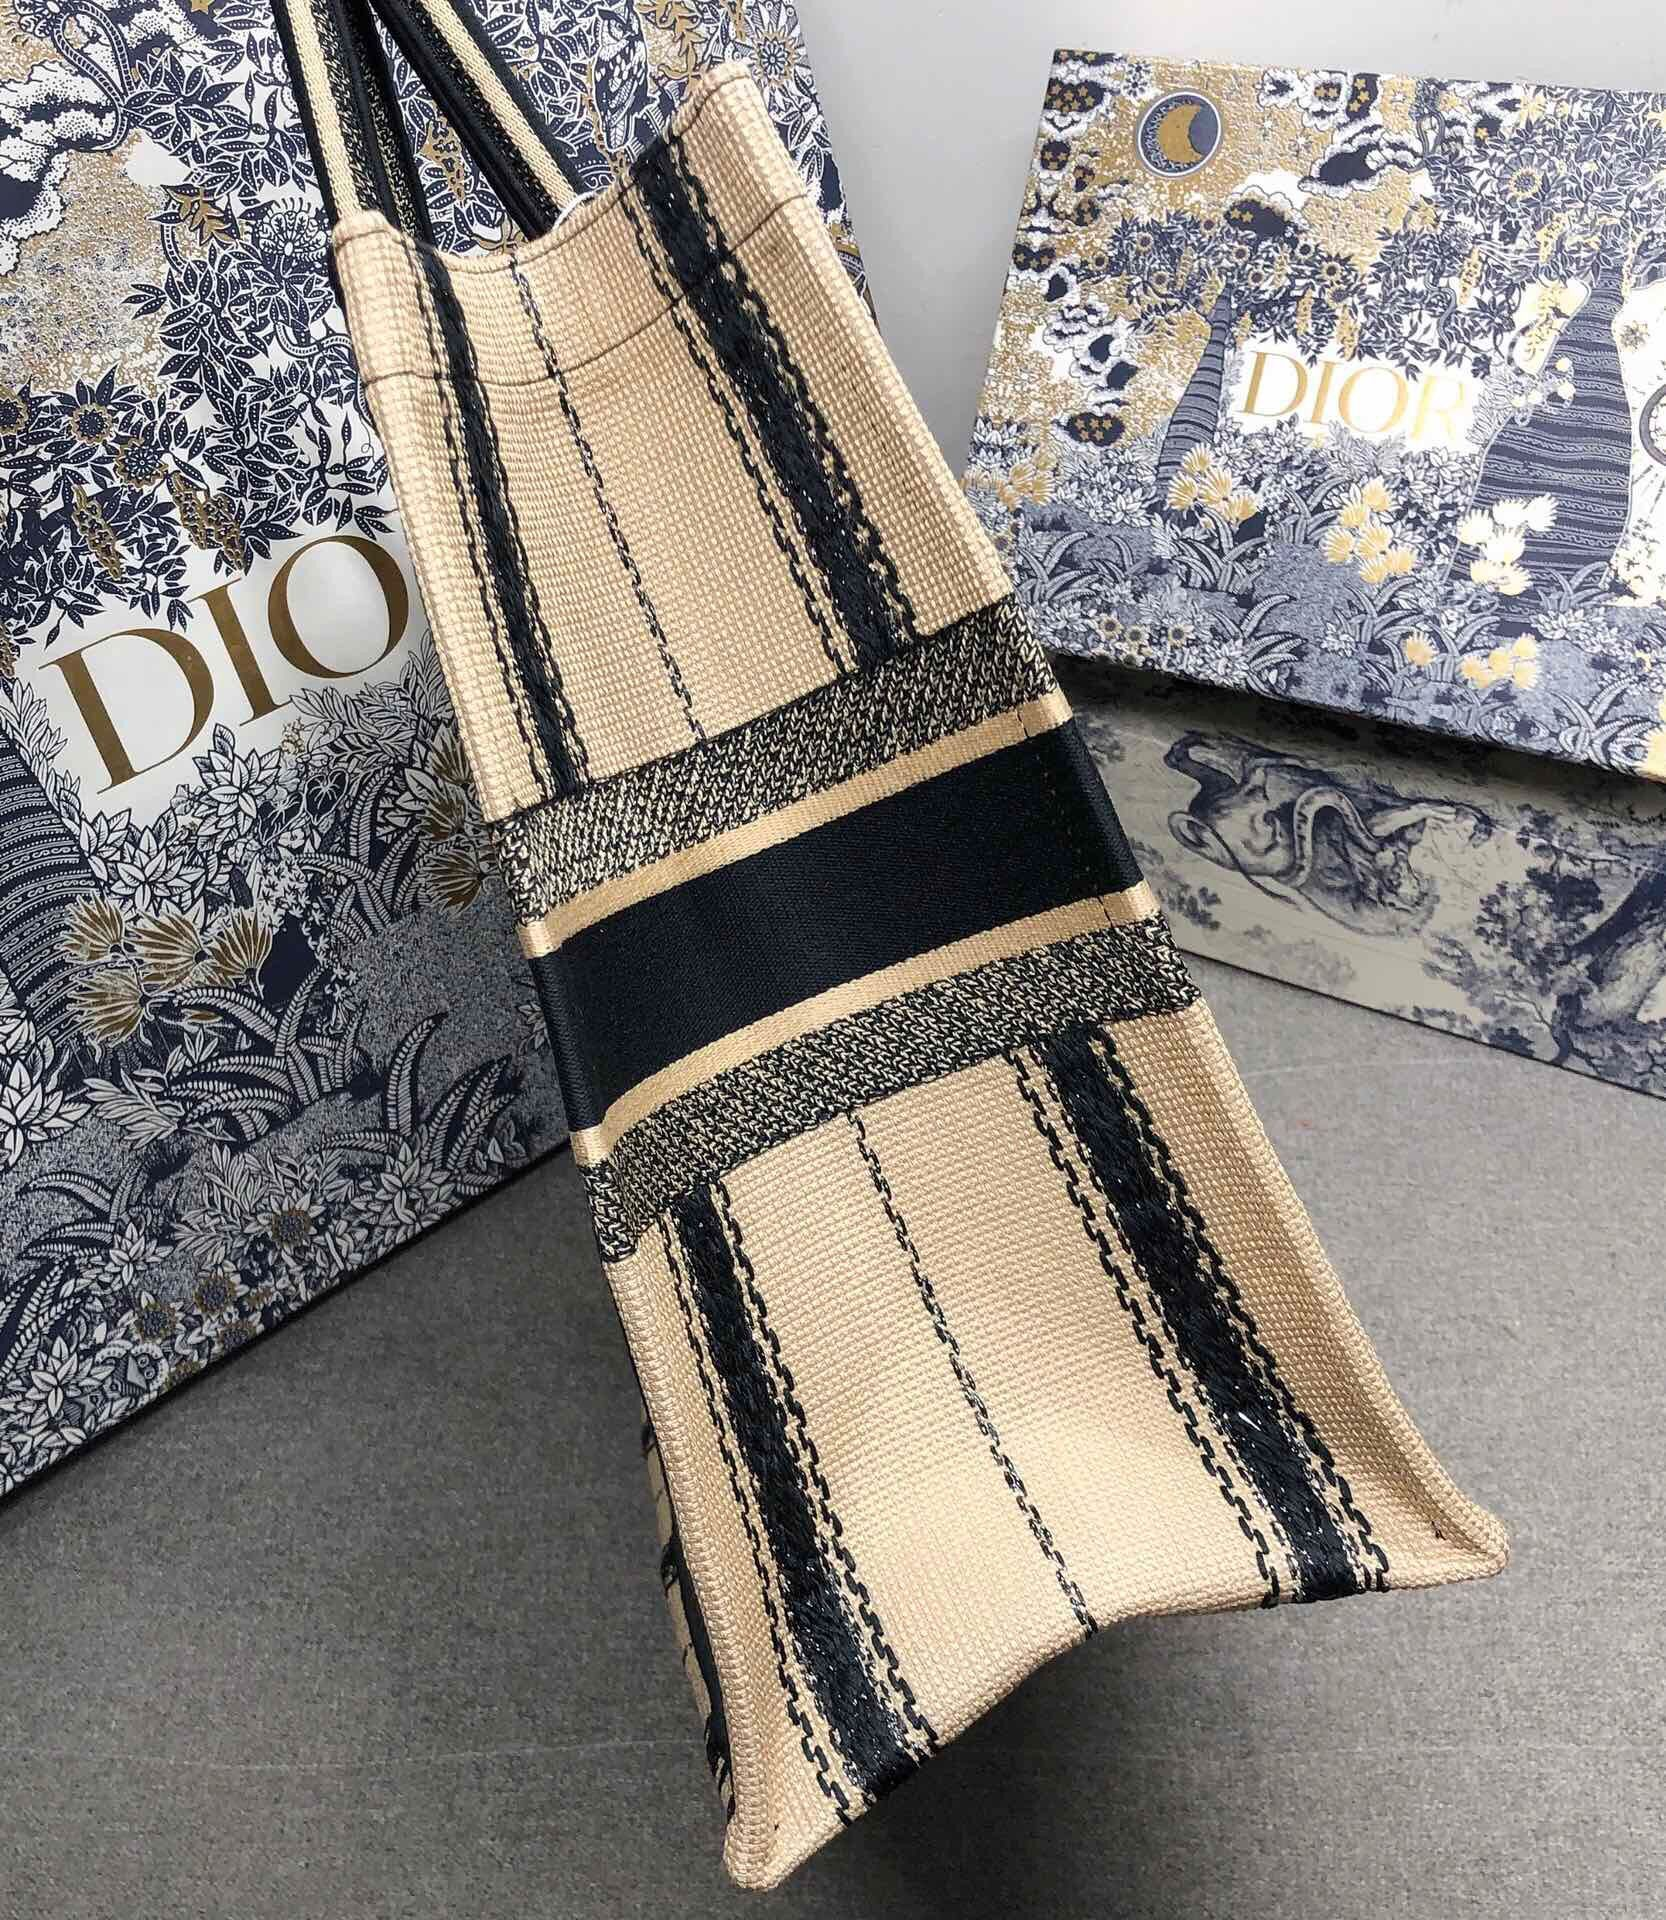 DIOR BOOK TOTE EMBROIDERED CANVAS BAG M1287-9